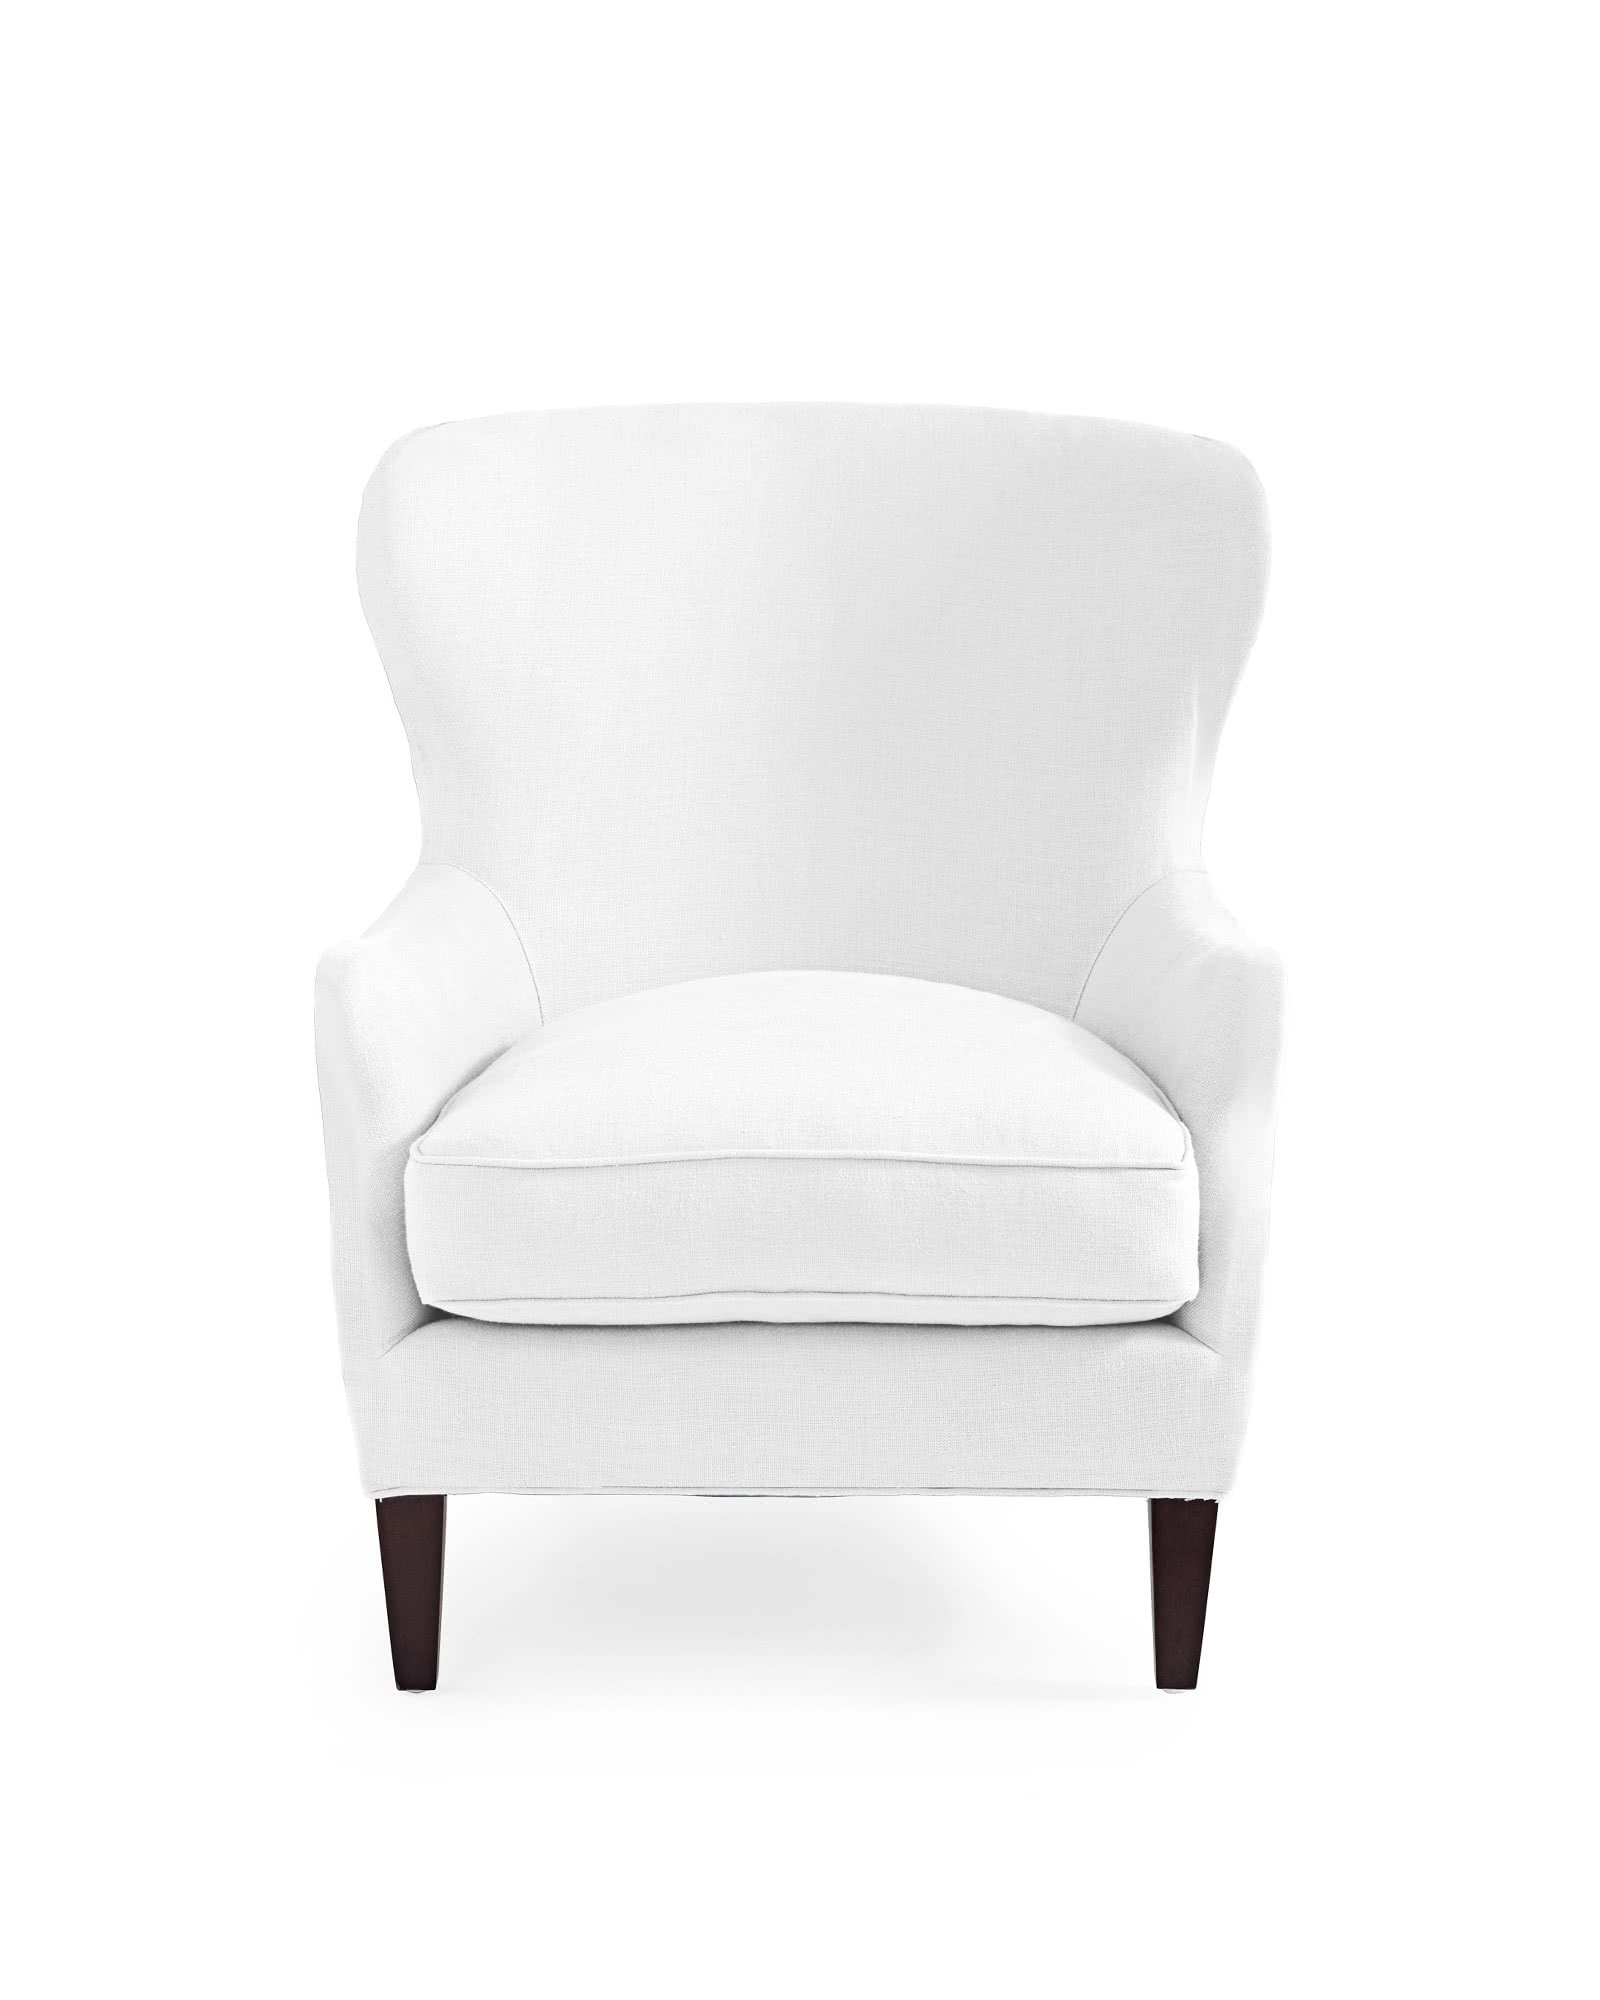 Thompson Wing Chair,